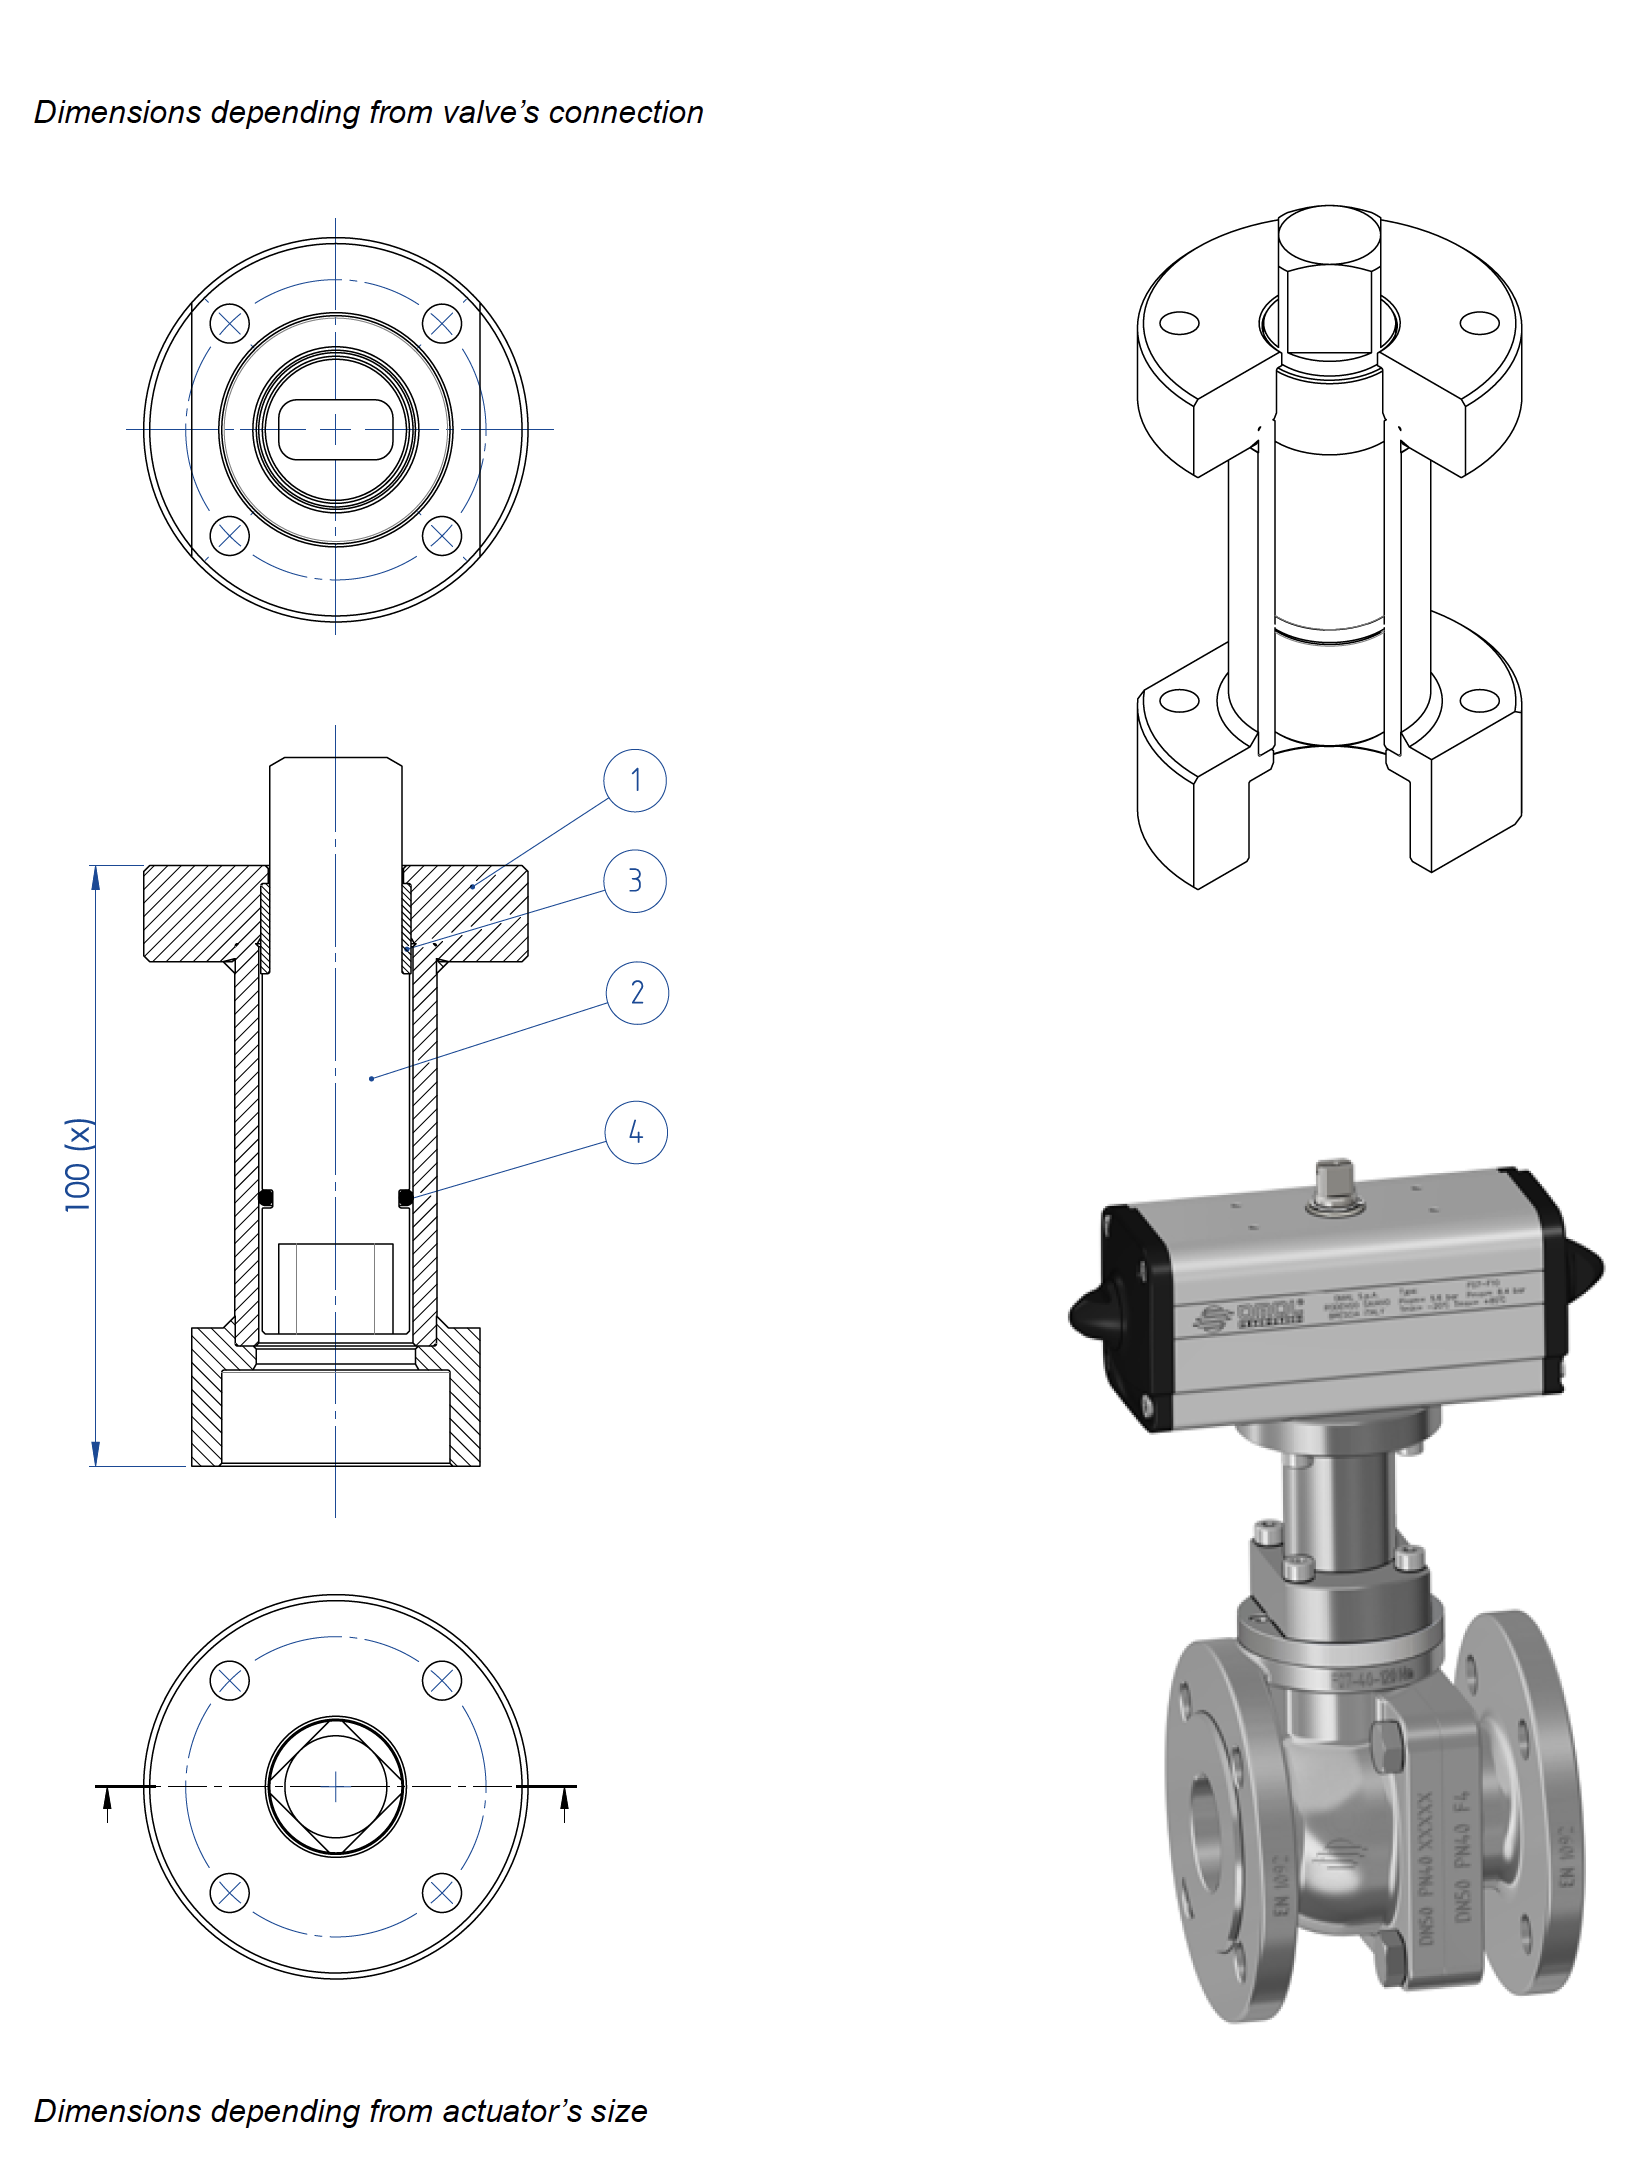 Prochemie 60 Split Body PN 16-40 stainless steel ball valve - accessories - Stem extension for actuators